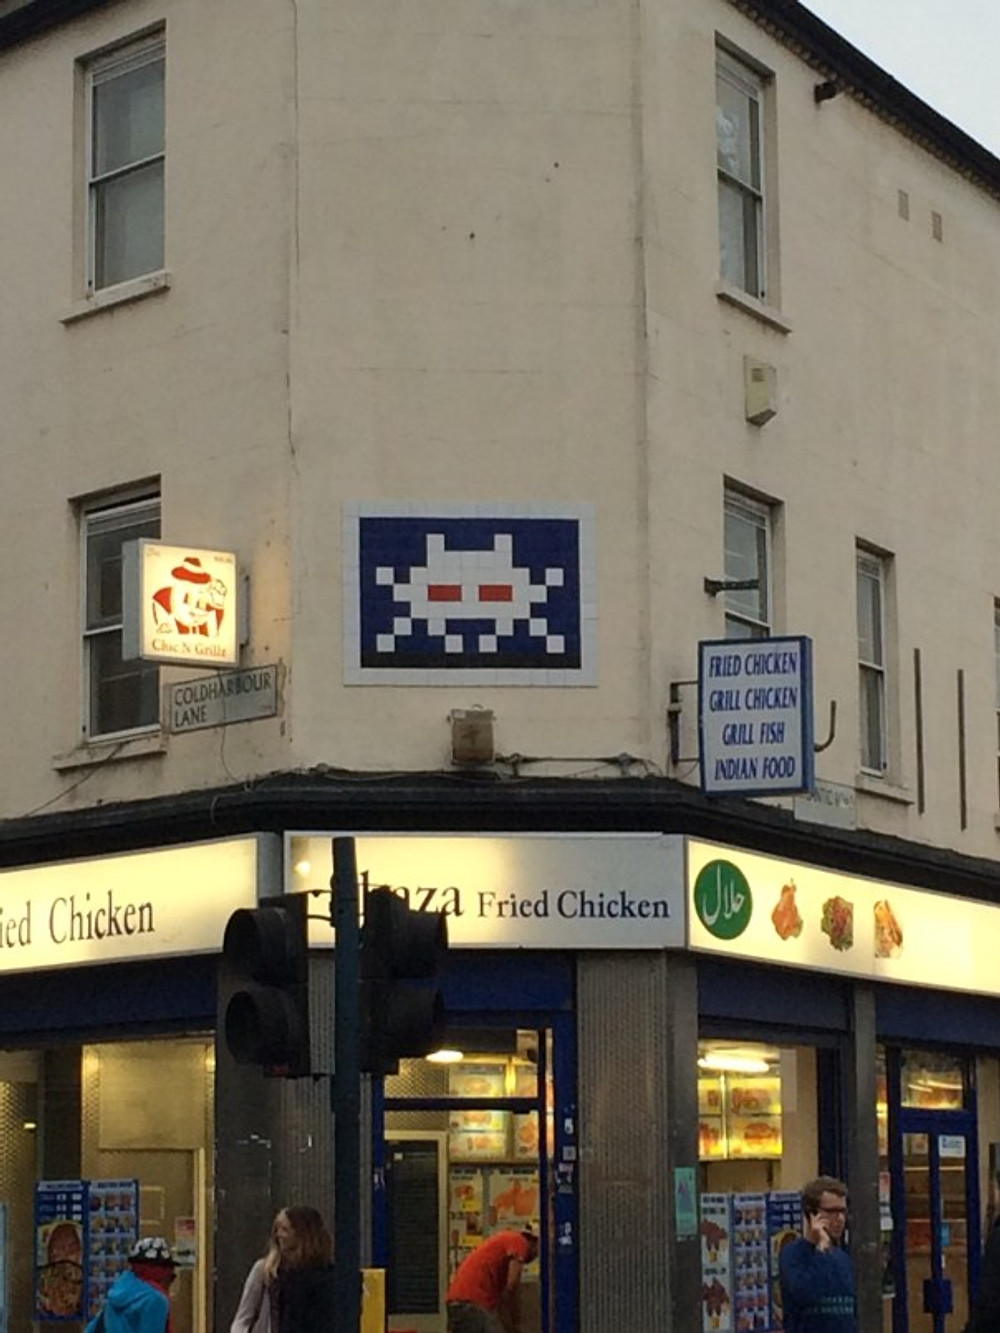 Space Invader tag in London